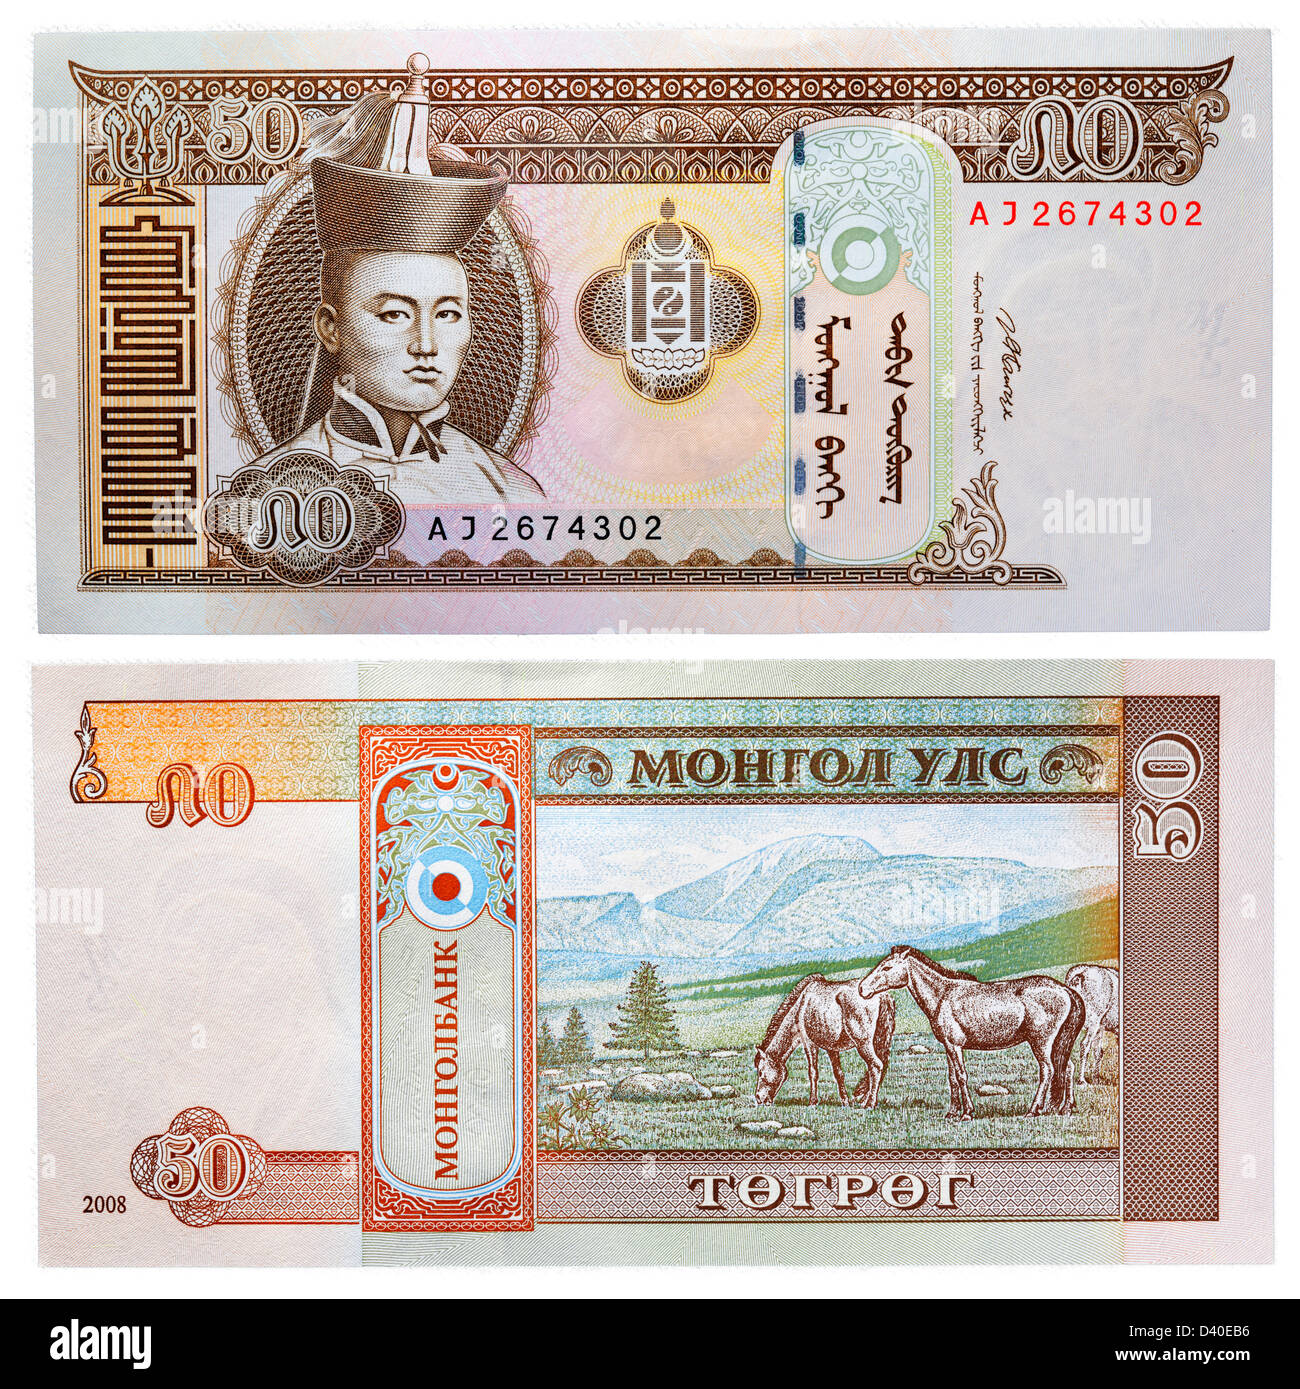 50 Tugrik, banknote, Sukhbaatar and horses in steppe, Mongolia, 2008 - Stock Image